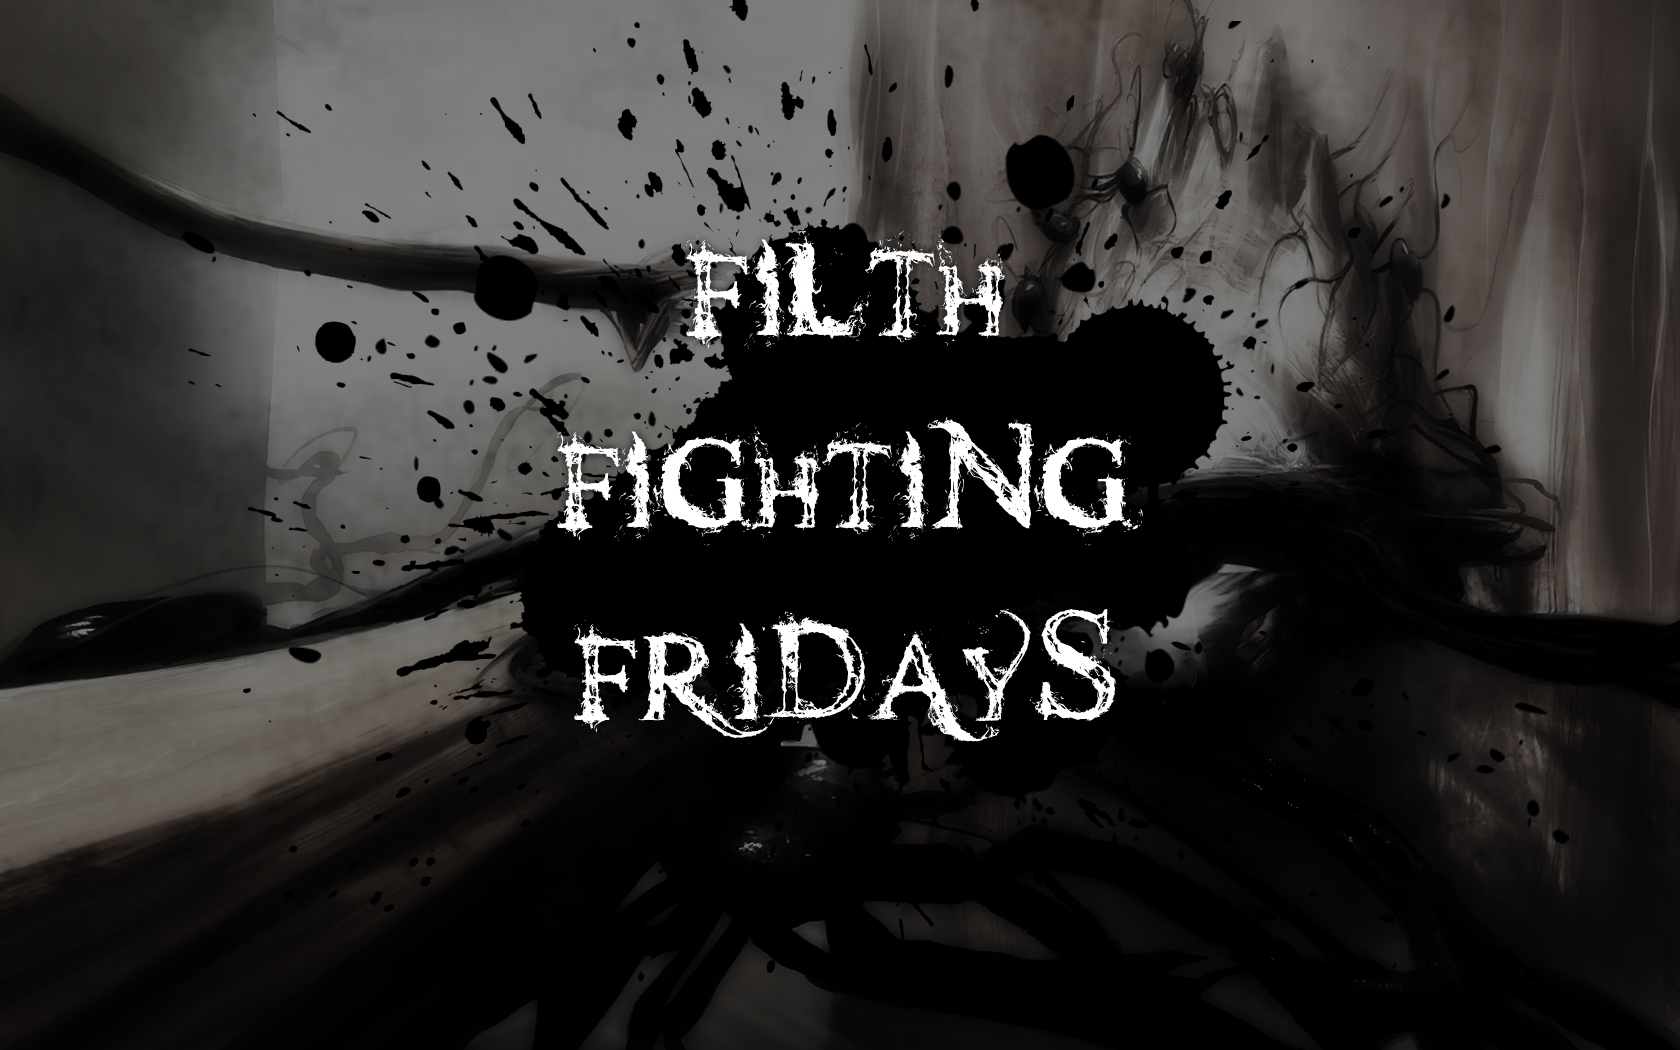 1388751164_filthfightingfridays.jpg